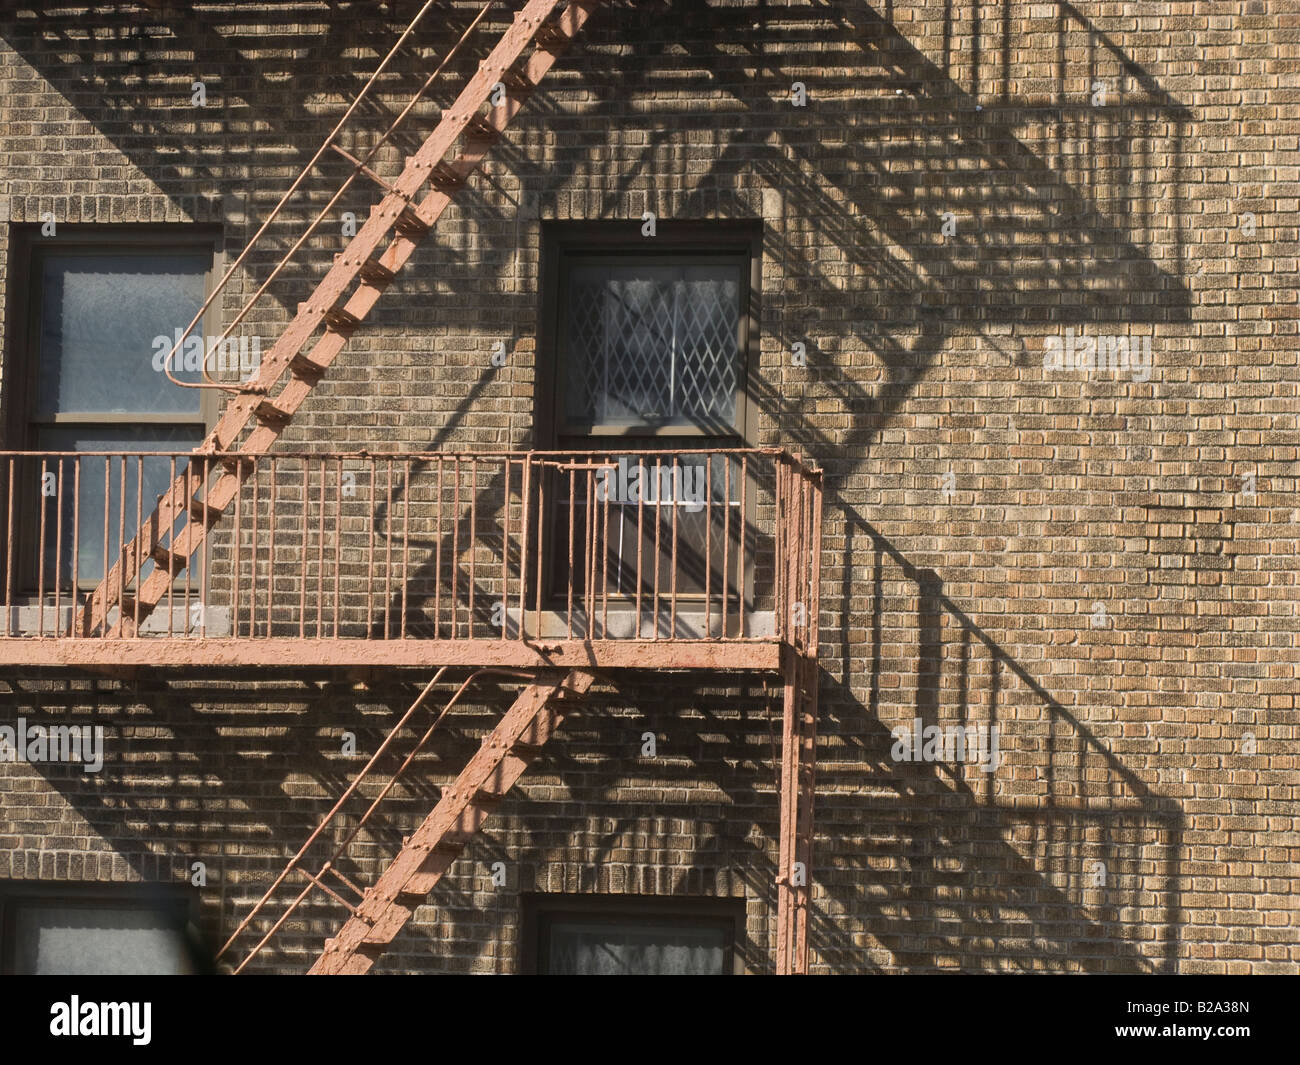 view of fire escapes on residential building - Stock Image